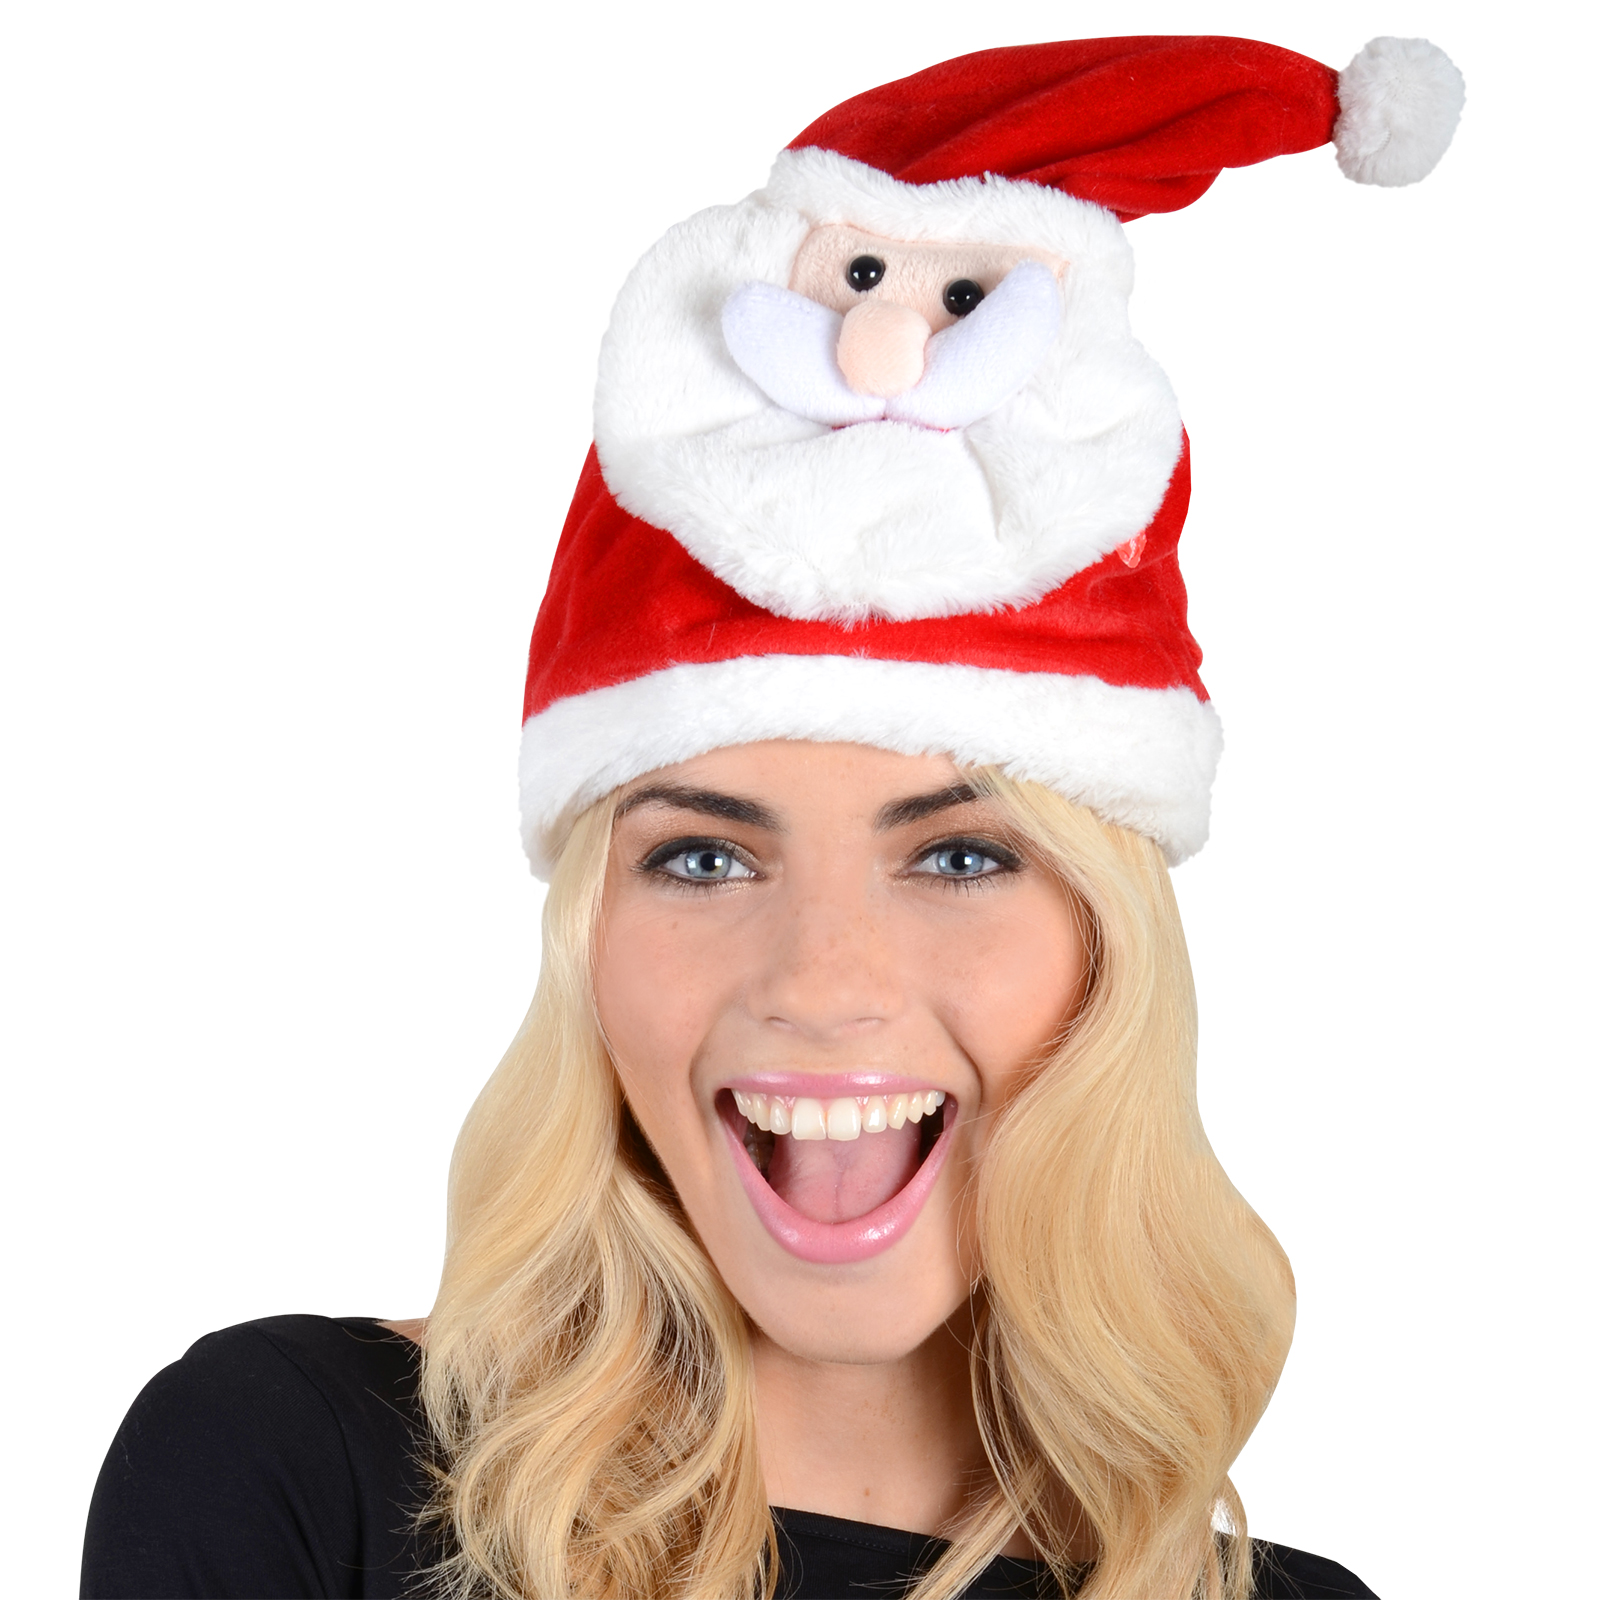 Funny dancing novelty santa hat plays you make me wanna